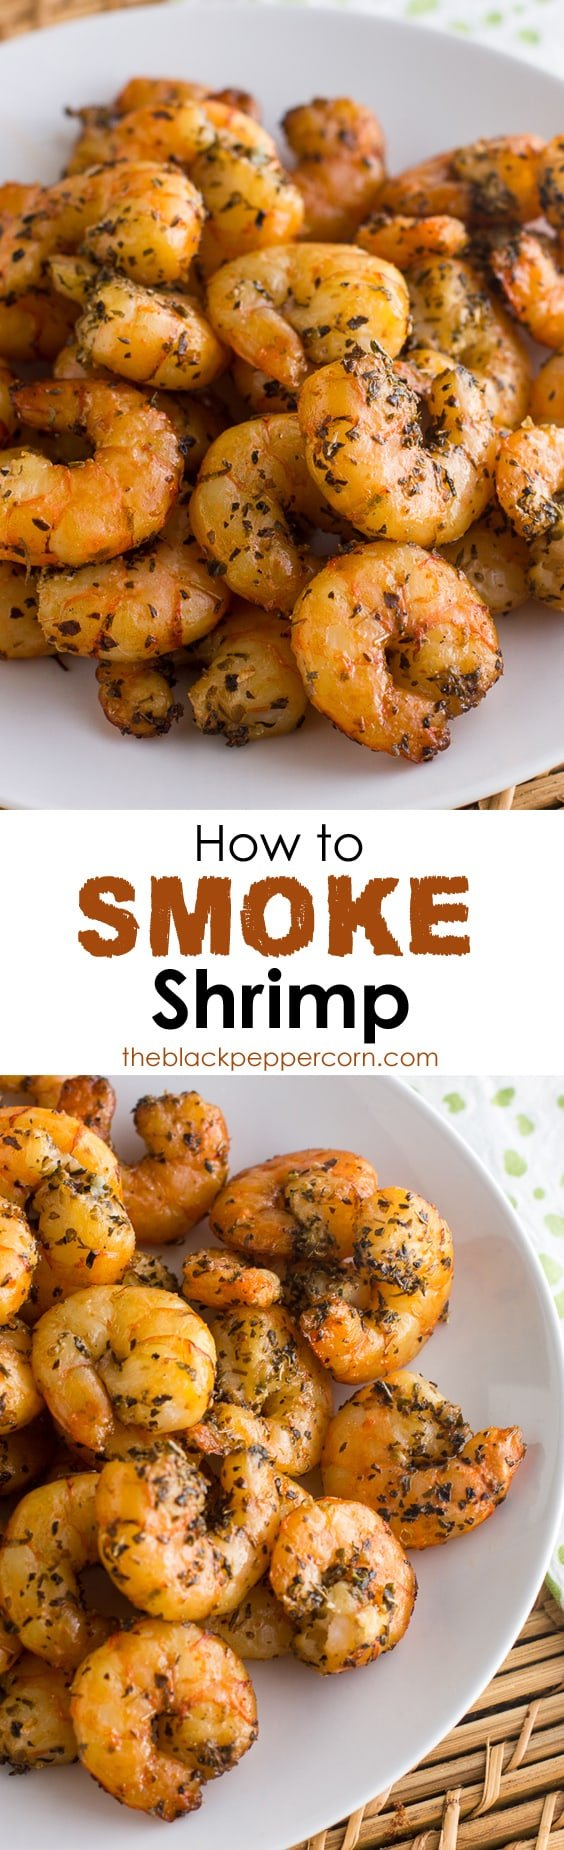 How to Smoke Shrimp in an Electric Smoker